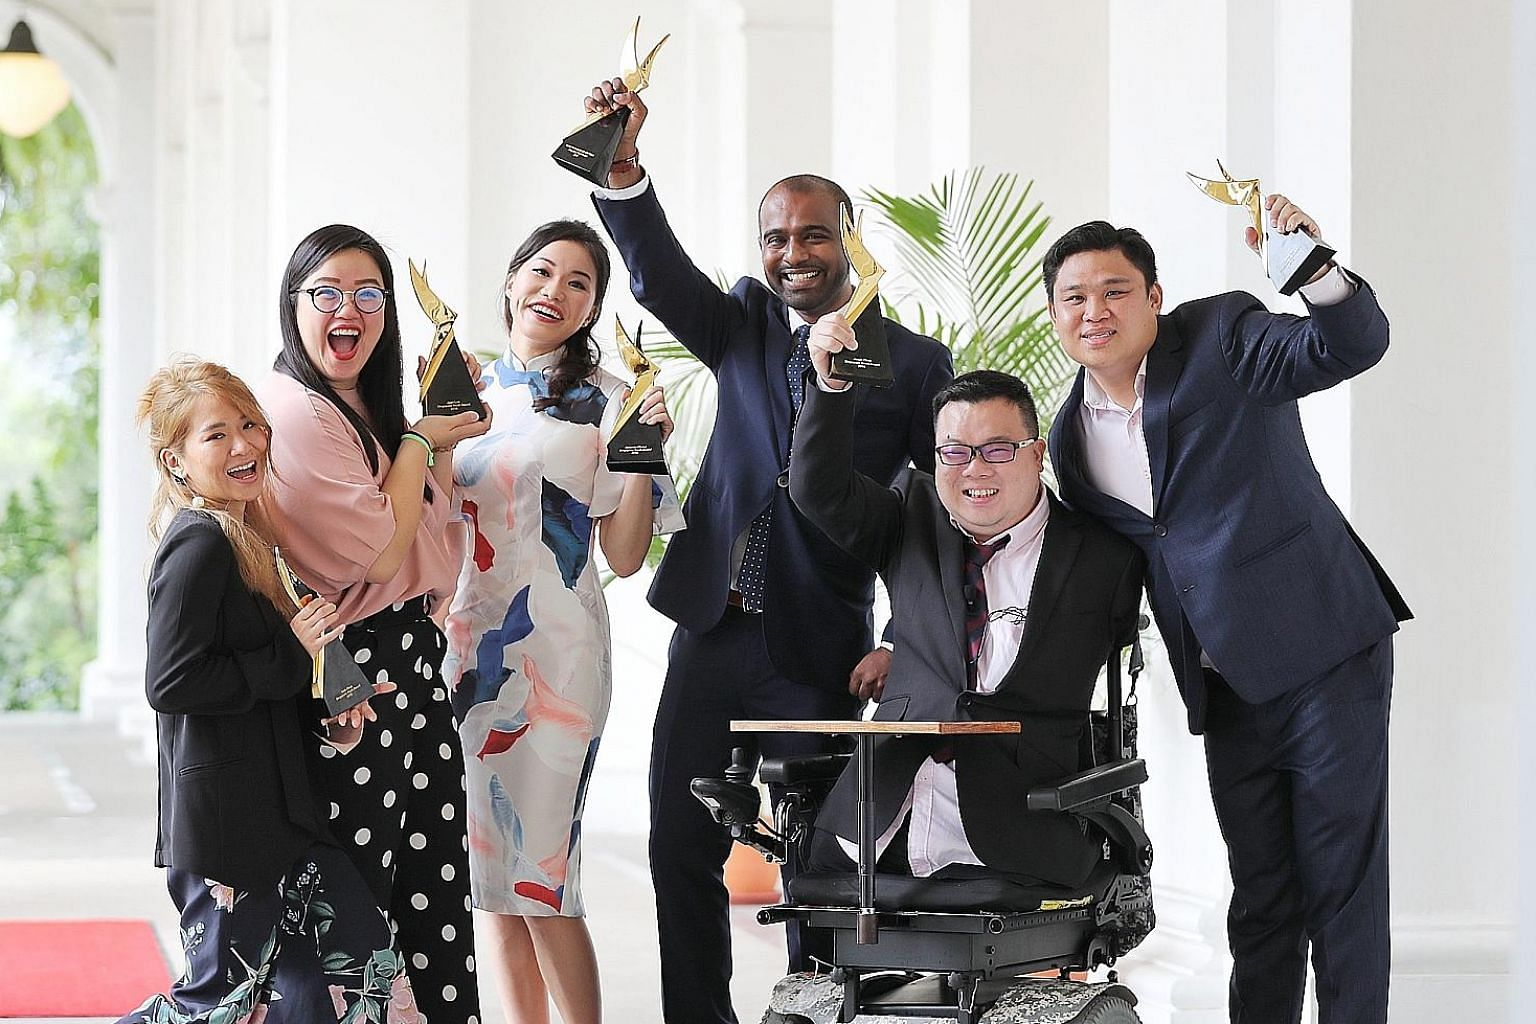 (From far left) Musician Inch Chua; Lien Foundation co-lead of early childhood development Jean Loo; state counsel Amanda Chong; surgeon Hamid Rahmatullah; para-athlete Jason Chee; and Pope Jai founder Daniel Teh after receiving their awards yesterda